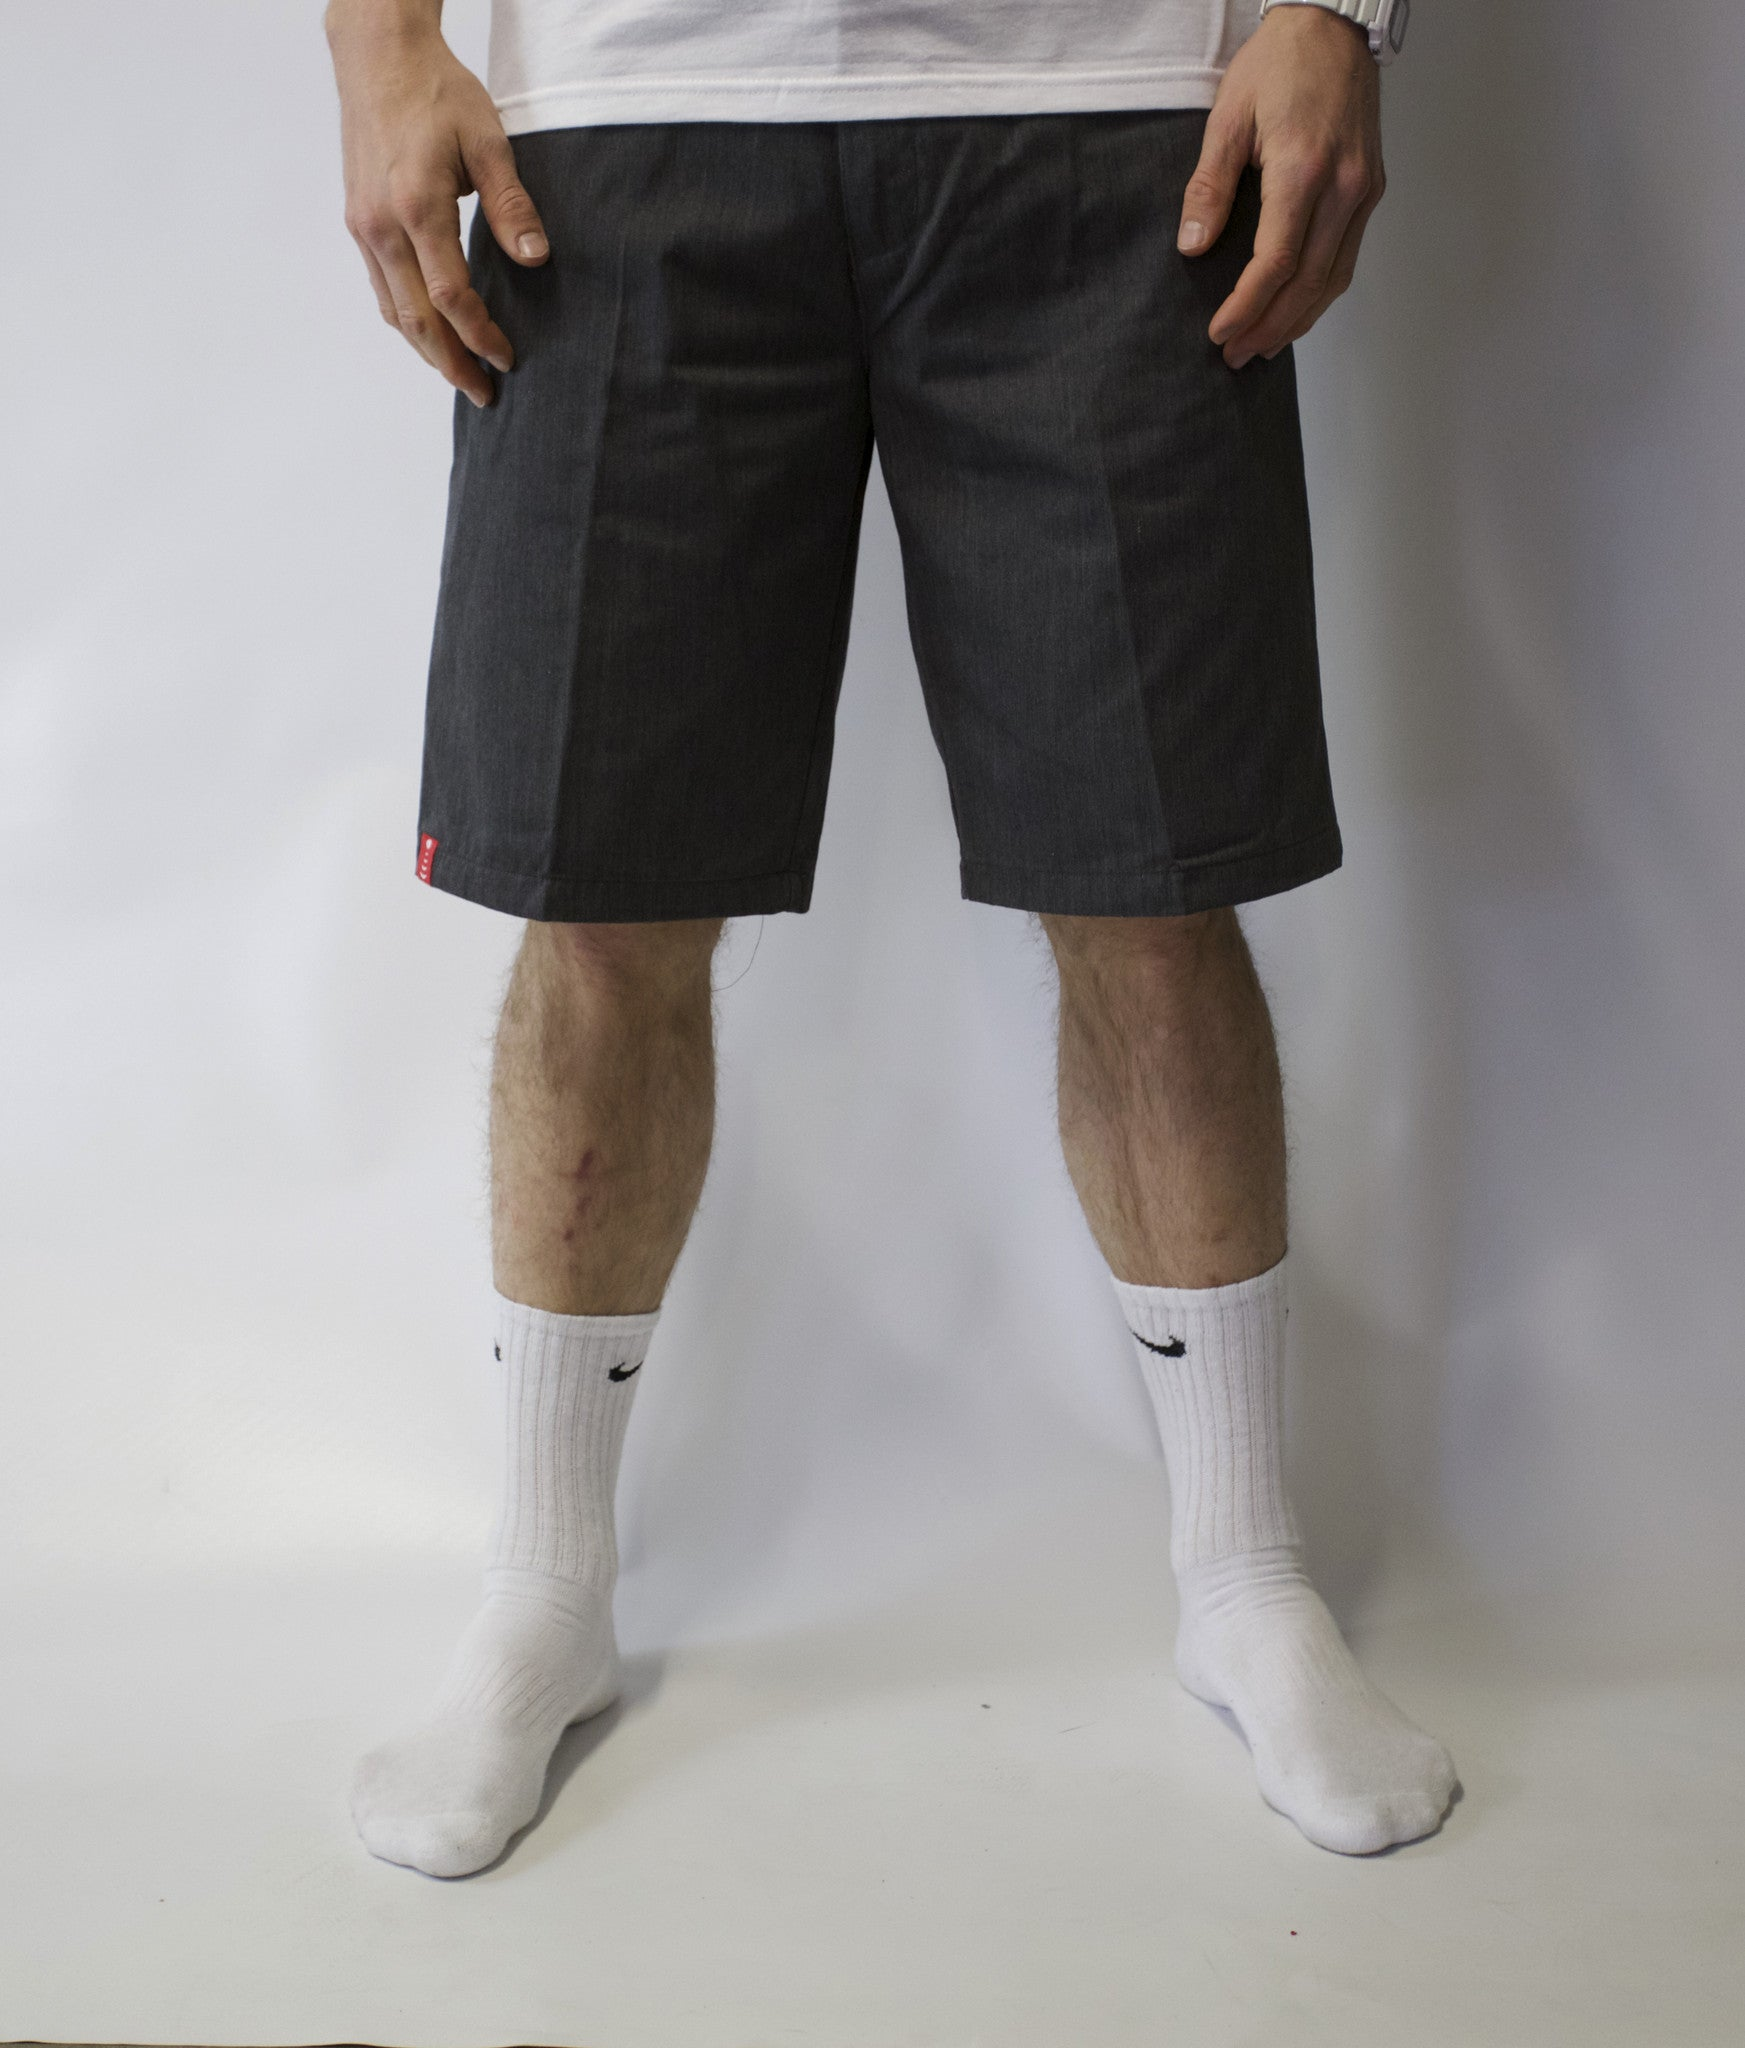 New Knocking Shorts